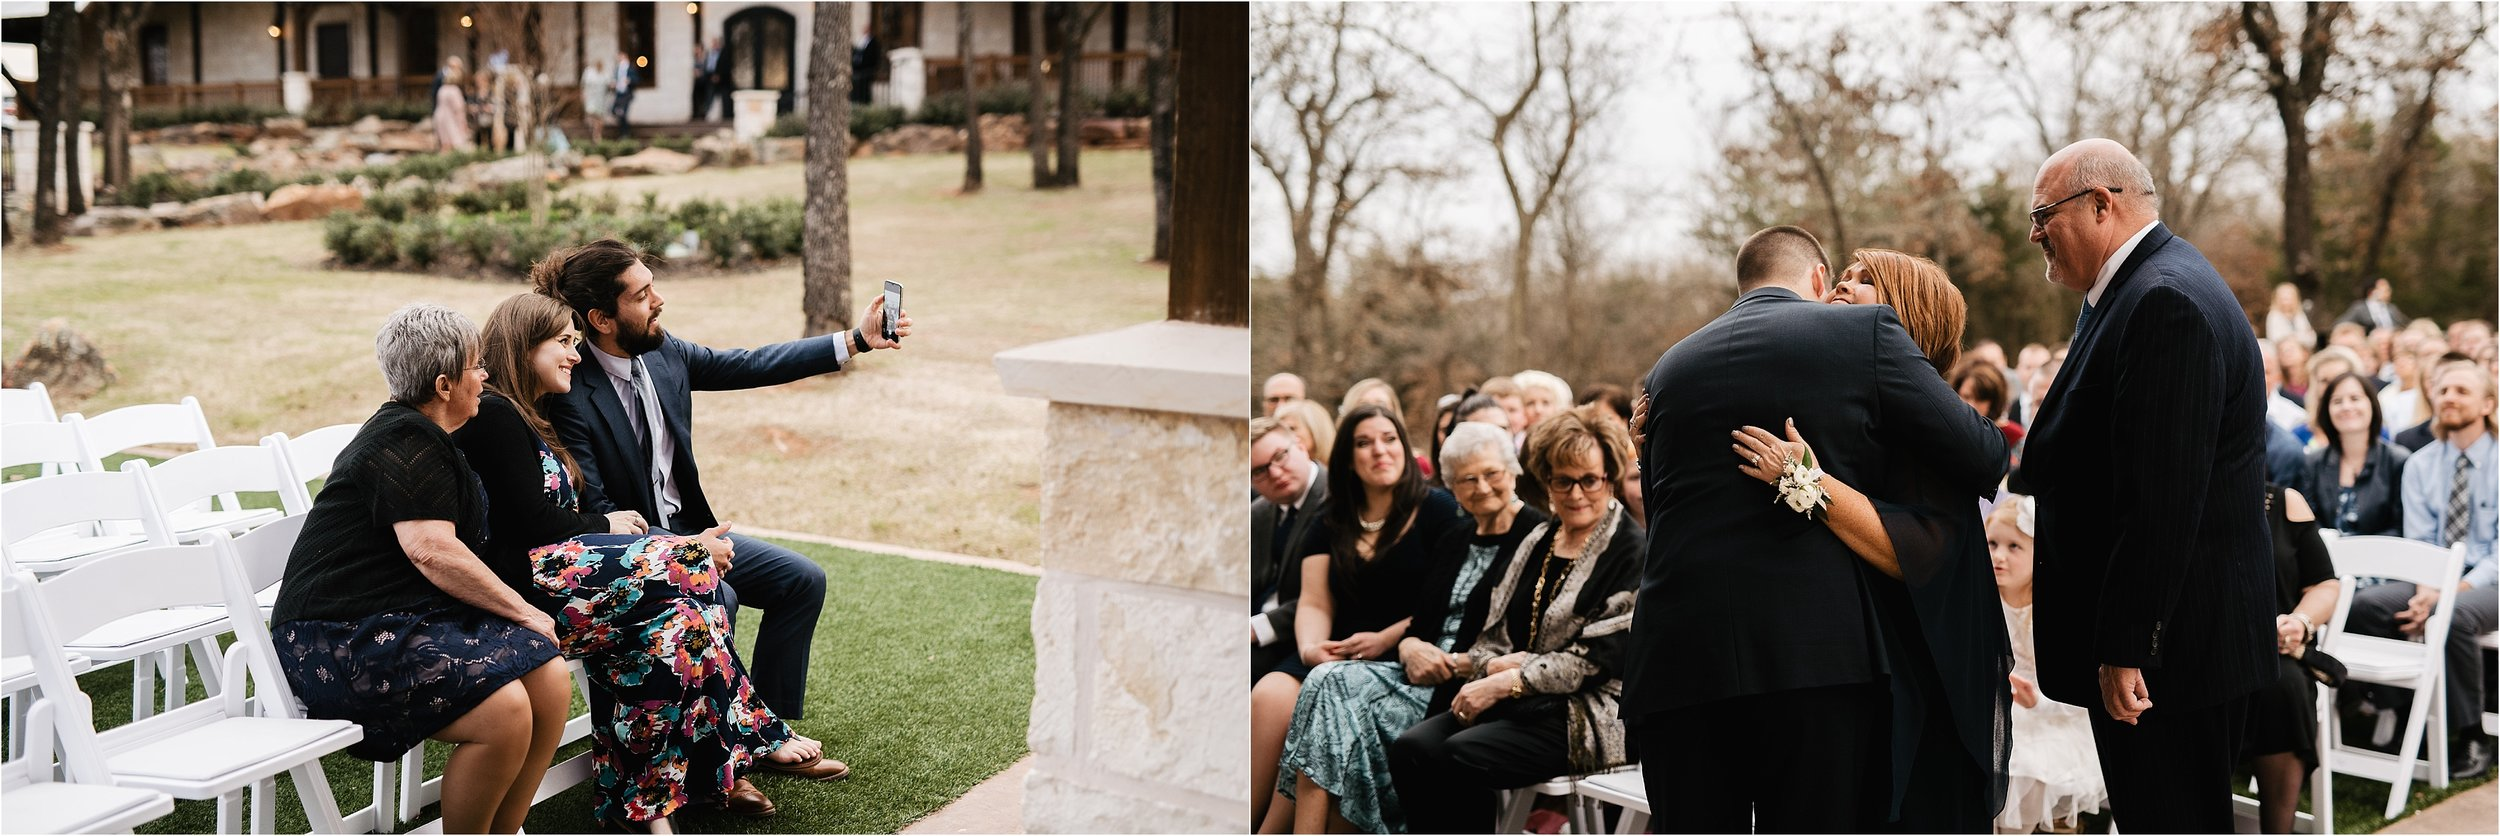 the springs norman oklahoma city wedding photographer outdoor ceremony reception wedding venue overcast family friends